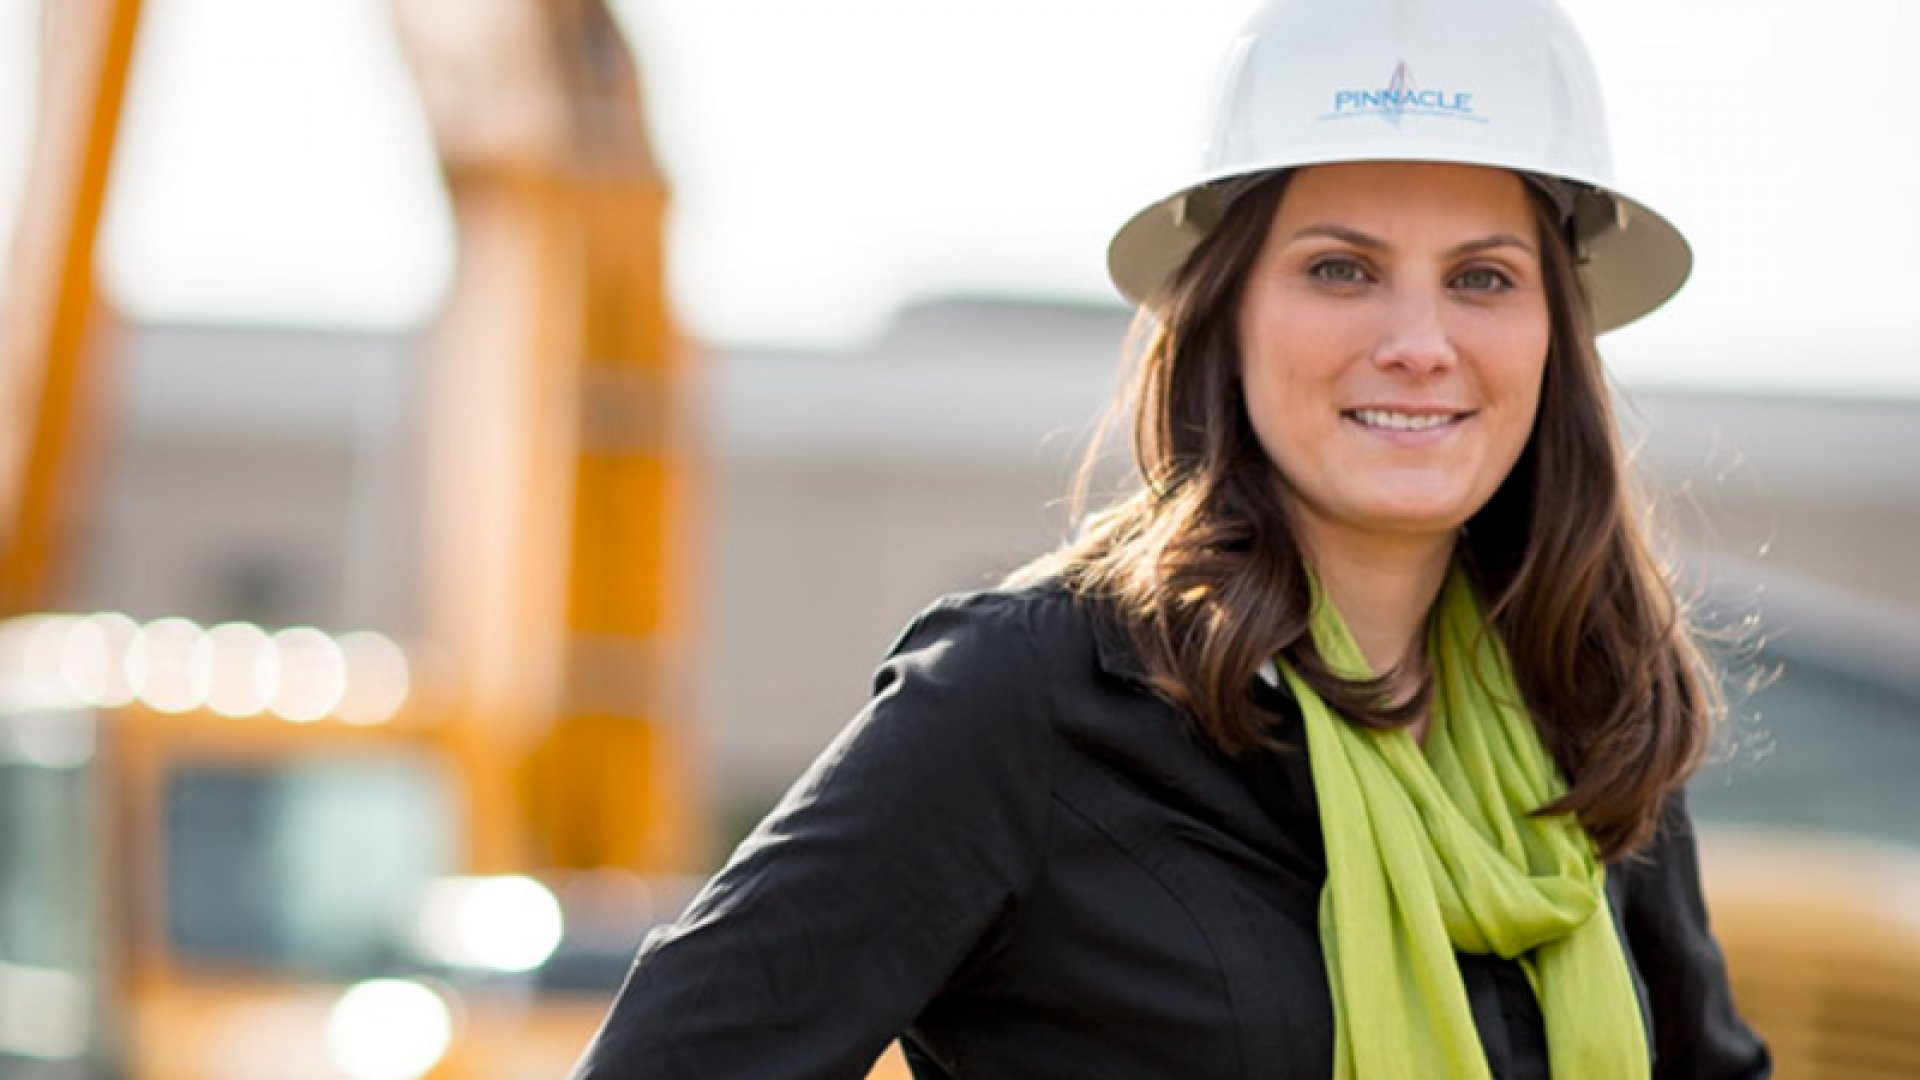 Lynlee Altman founded Cleveland's Pinnacle Construction in 2000. She credits her success largely to government contracts.